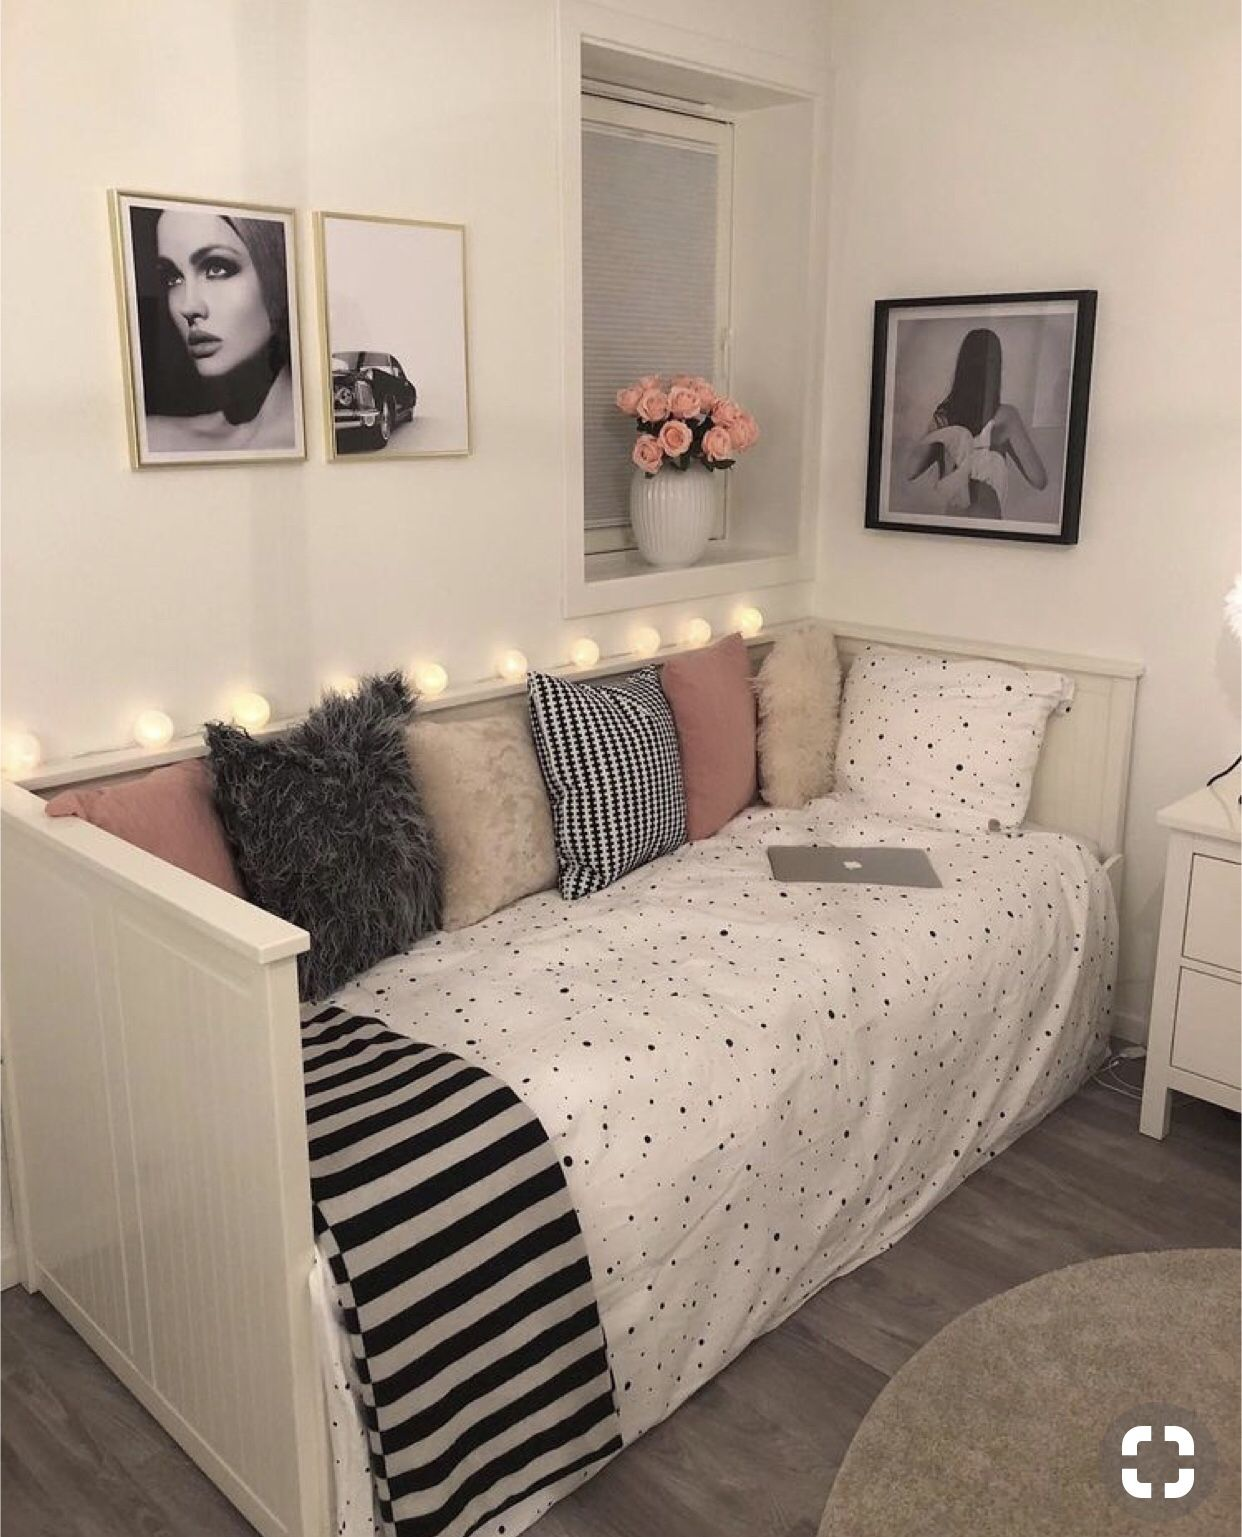 Pin By Mercedes On Tilbdwjoots Beautiful Dorm Room Dorm Room Decor Small Bedroom Storage